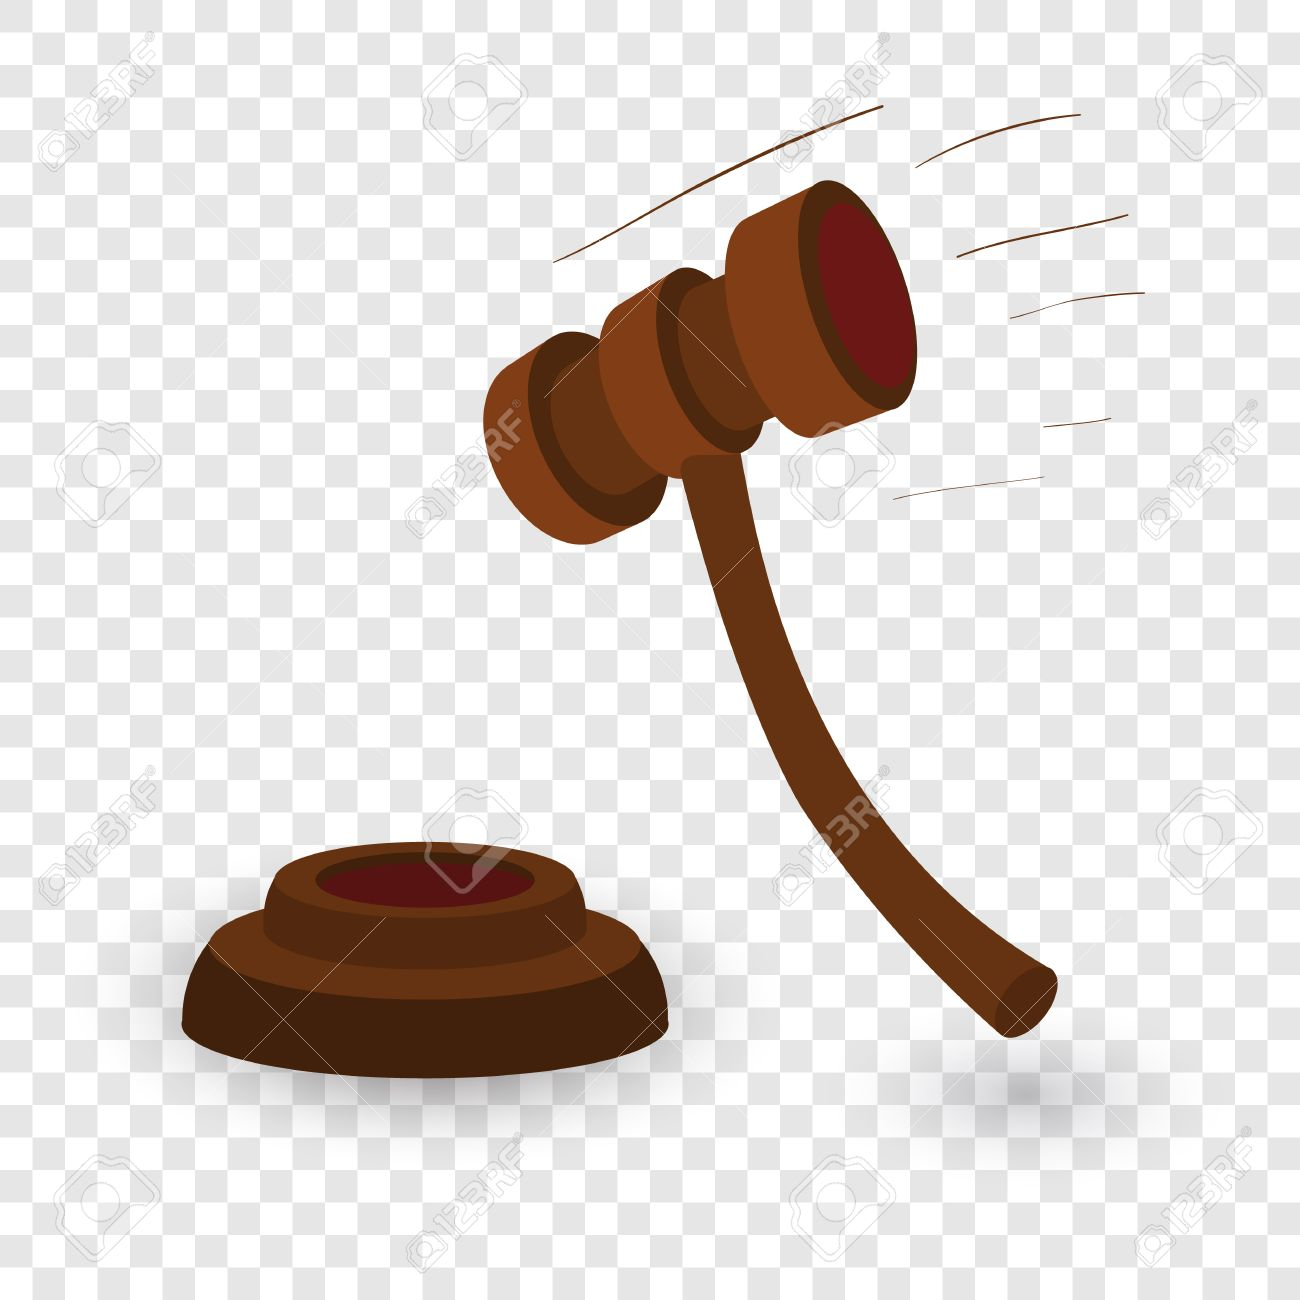 Gavel cartoon illustration. Single symbol on transparent background.